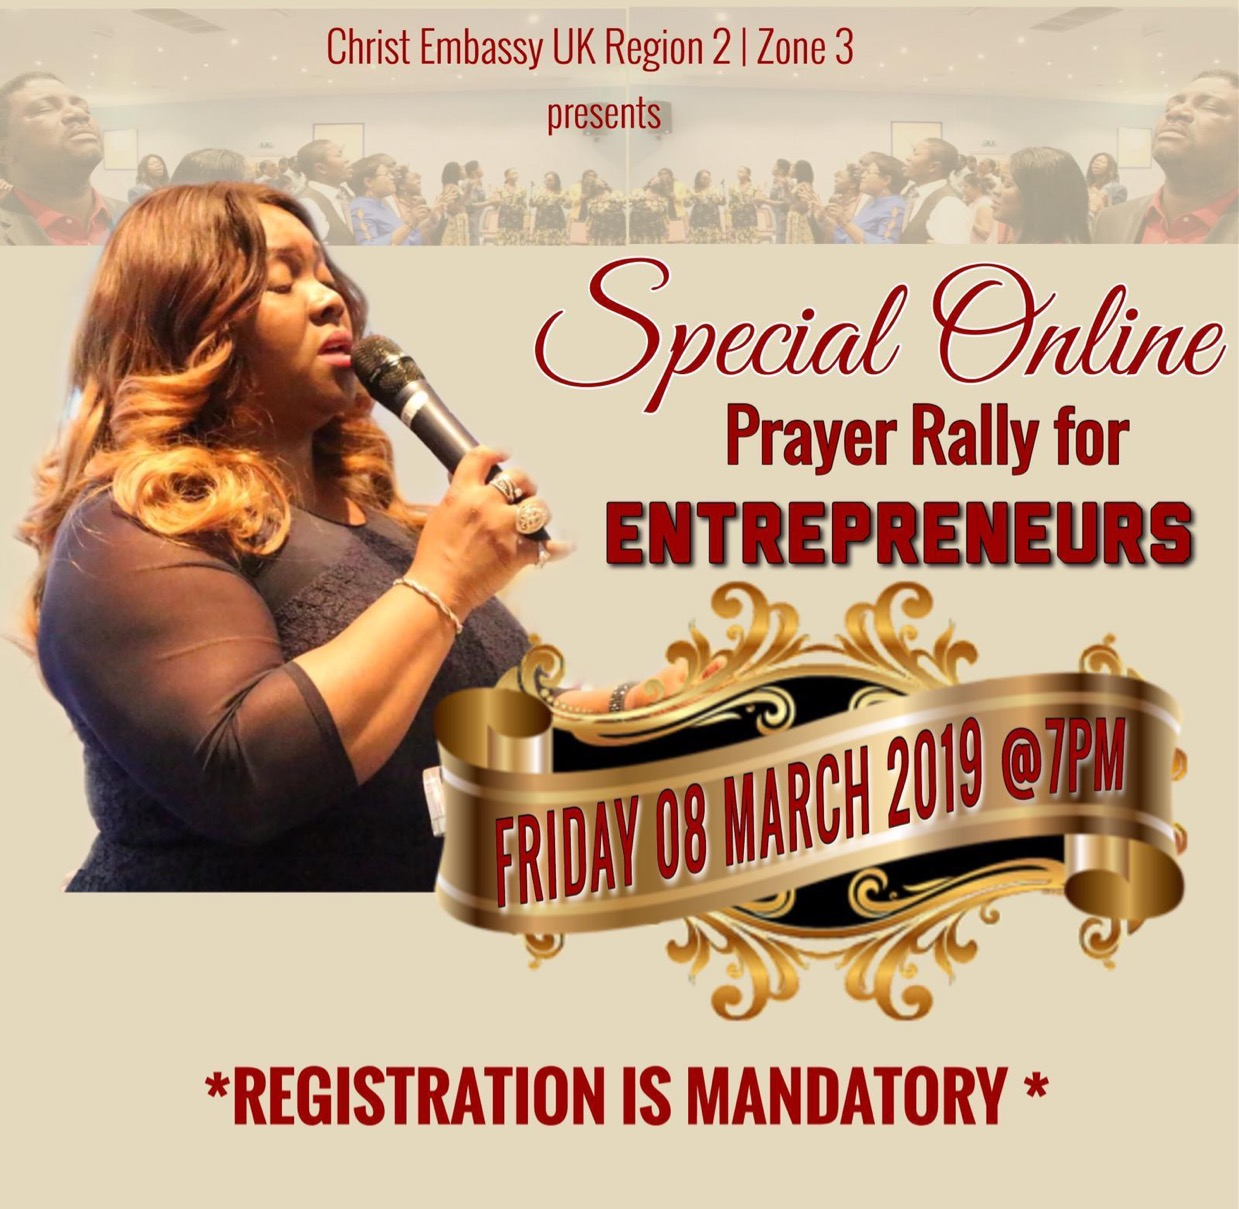 It's not like before #opce2019